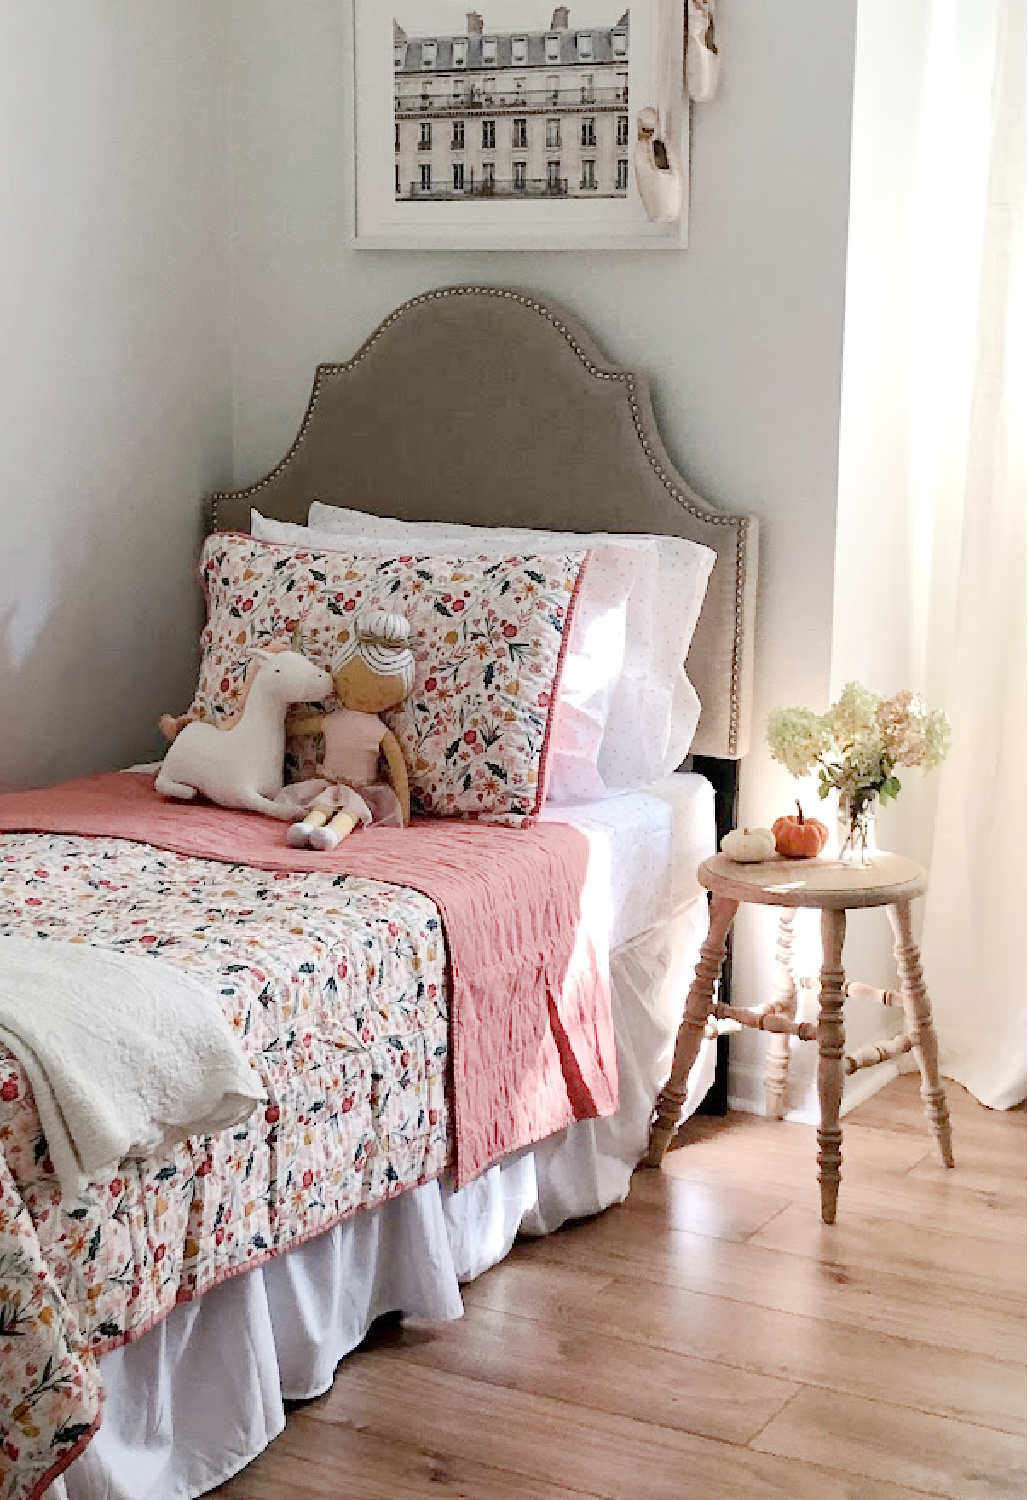 Floral quilt with dusty rose in a sweet bedroom with fall light - Hello Lovely Studio.